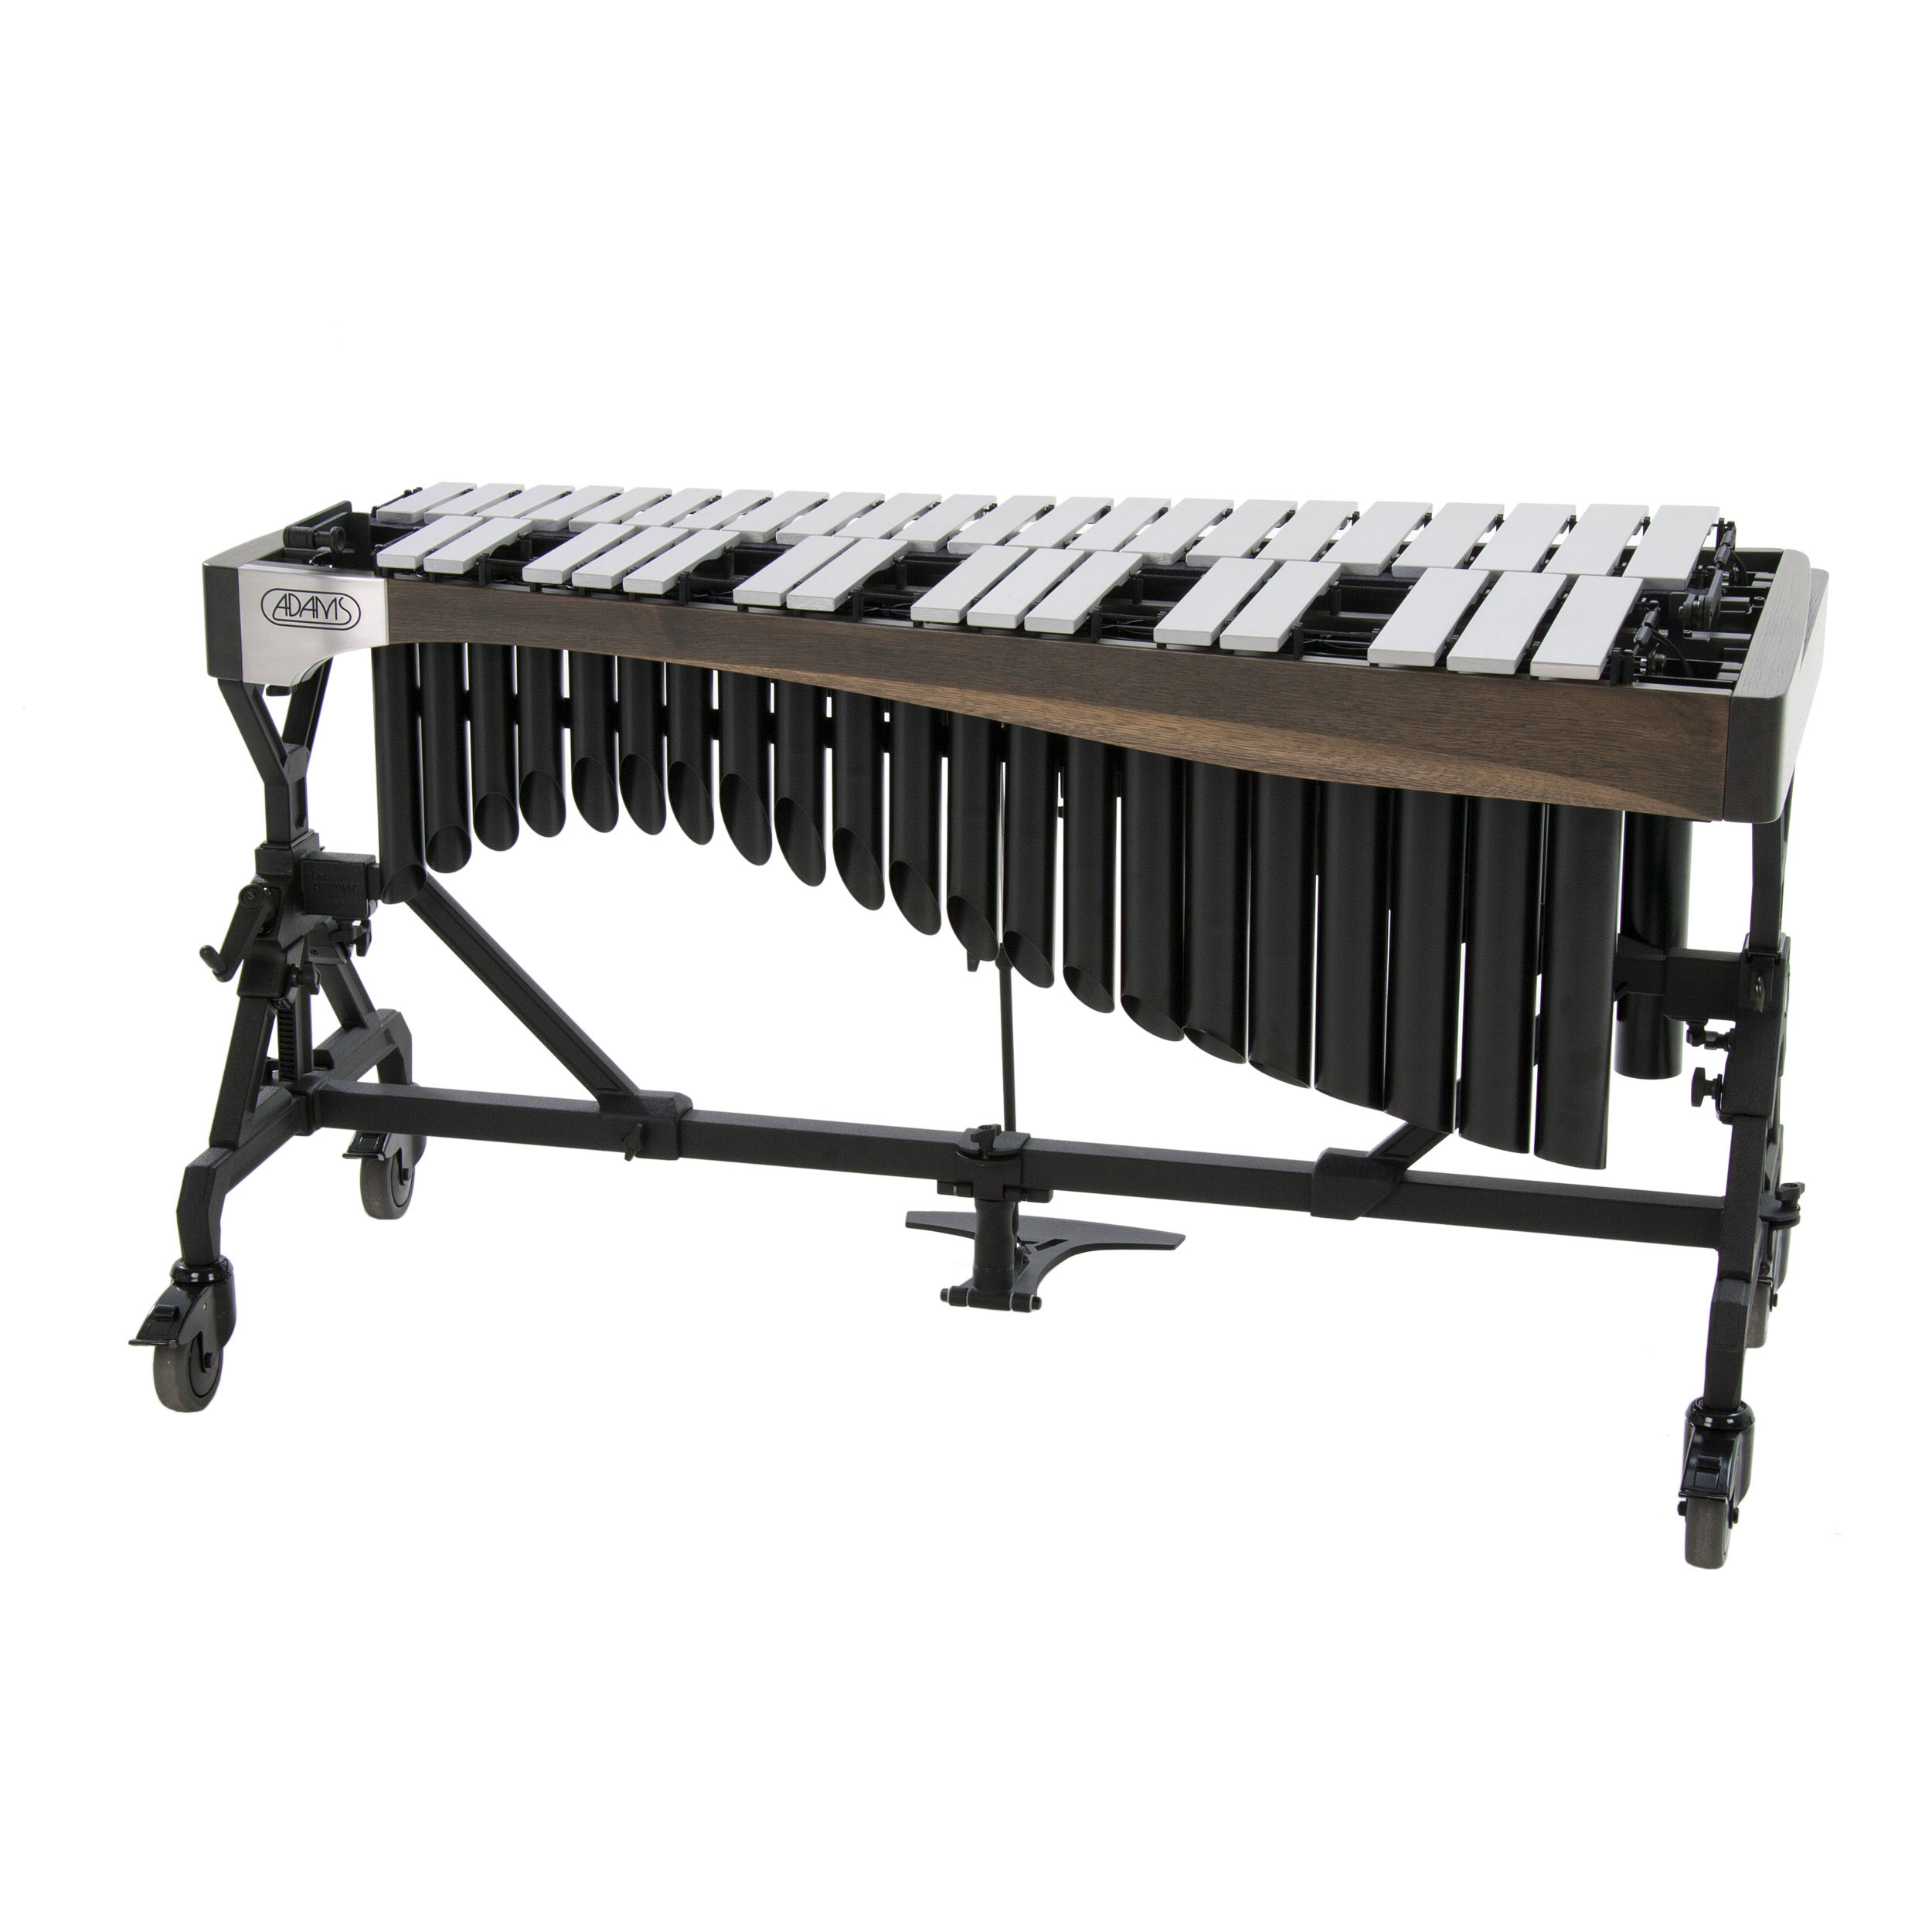 Adams 3.0 Octave Alpha Series Vibraphone with Silver Bars, Traveler Frame, and Motor